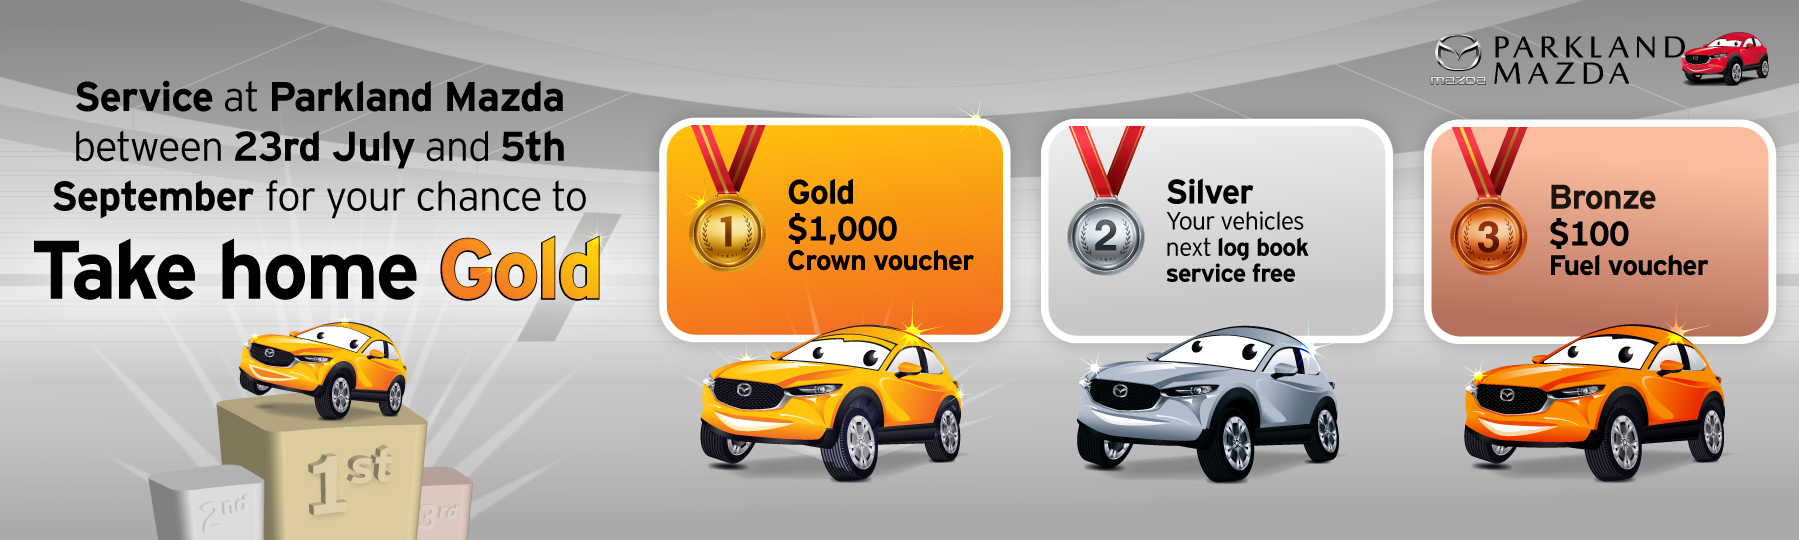 Book a service to take home gold